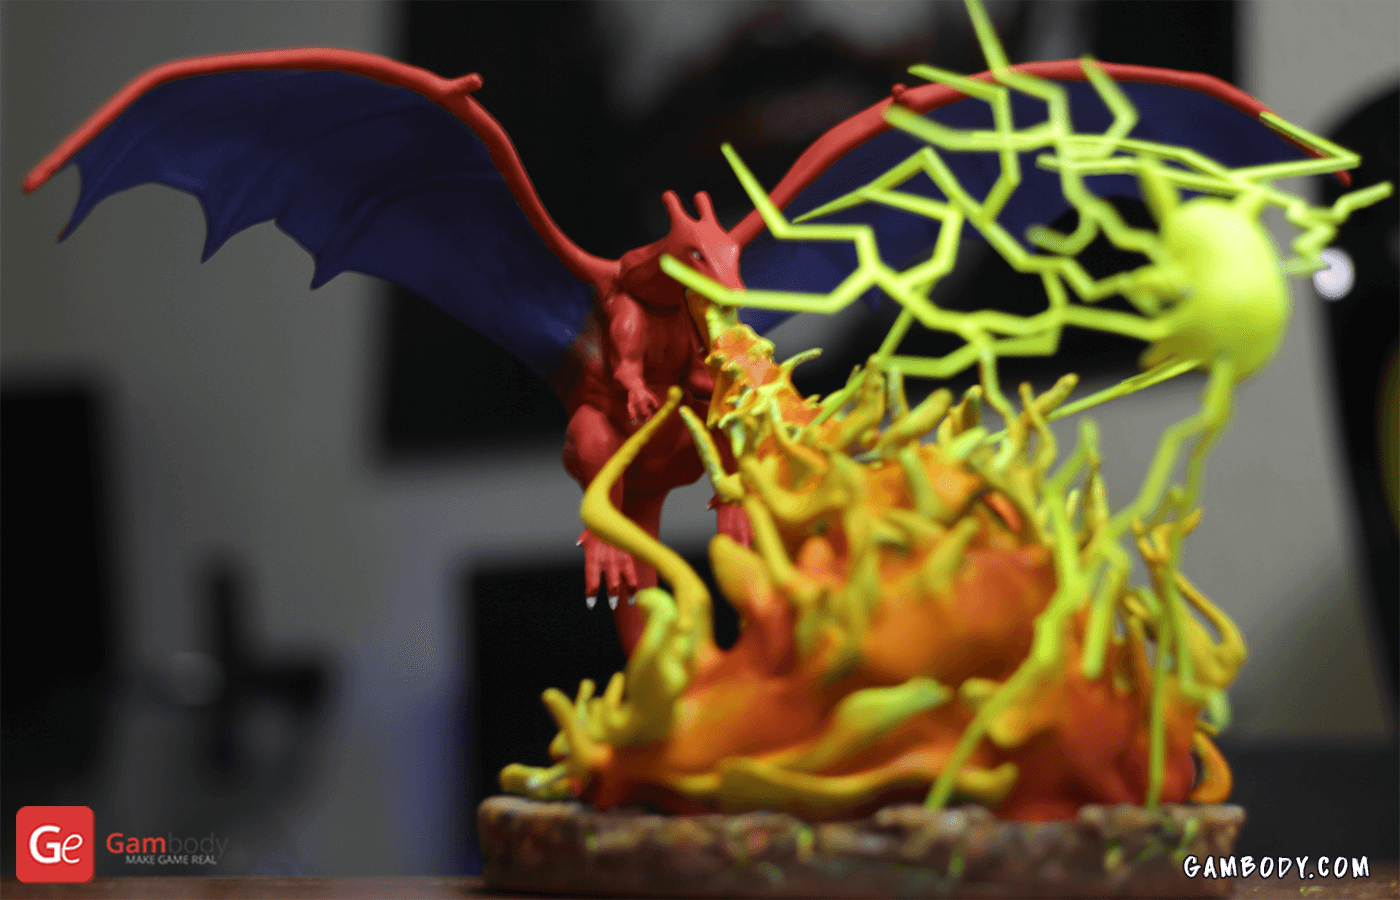 Pokemon, Charizard vs. Pikachu 3D printing Diorama Photo 2